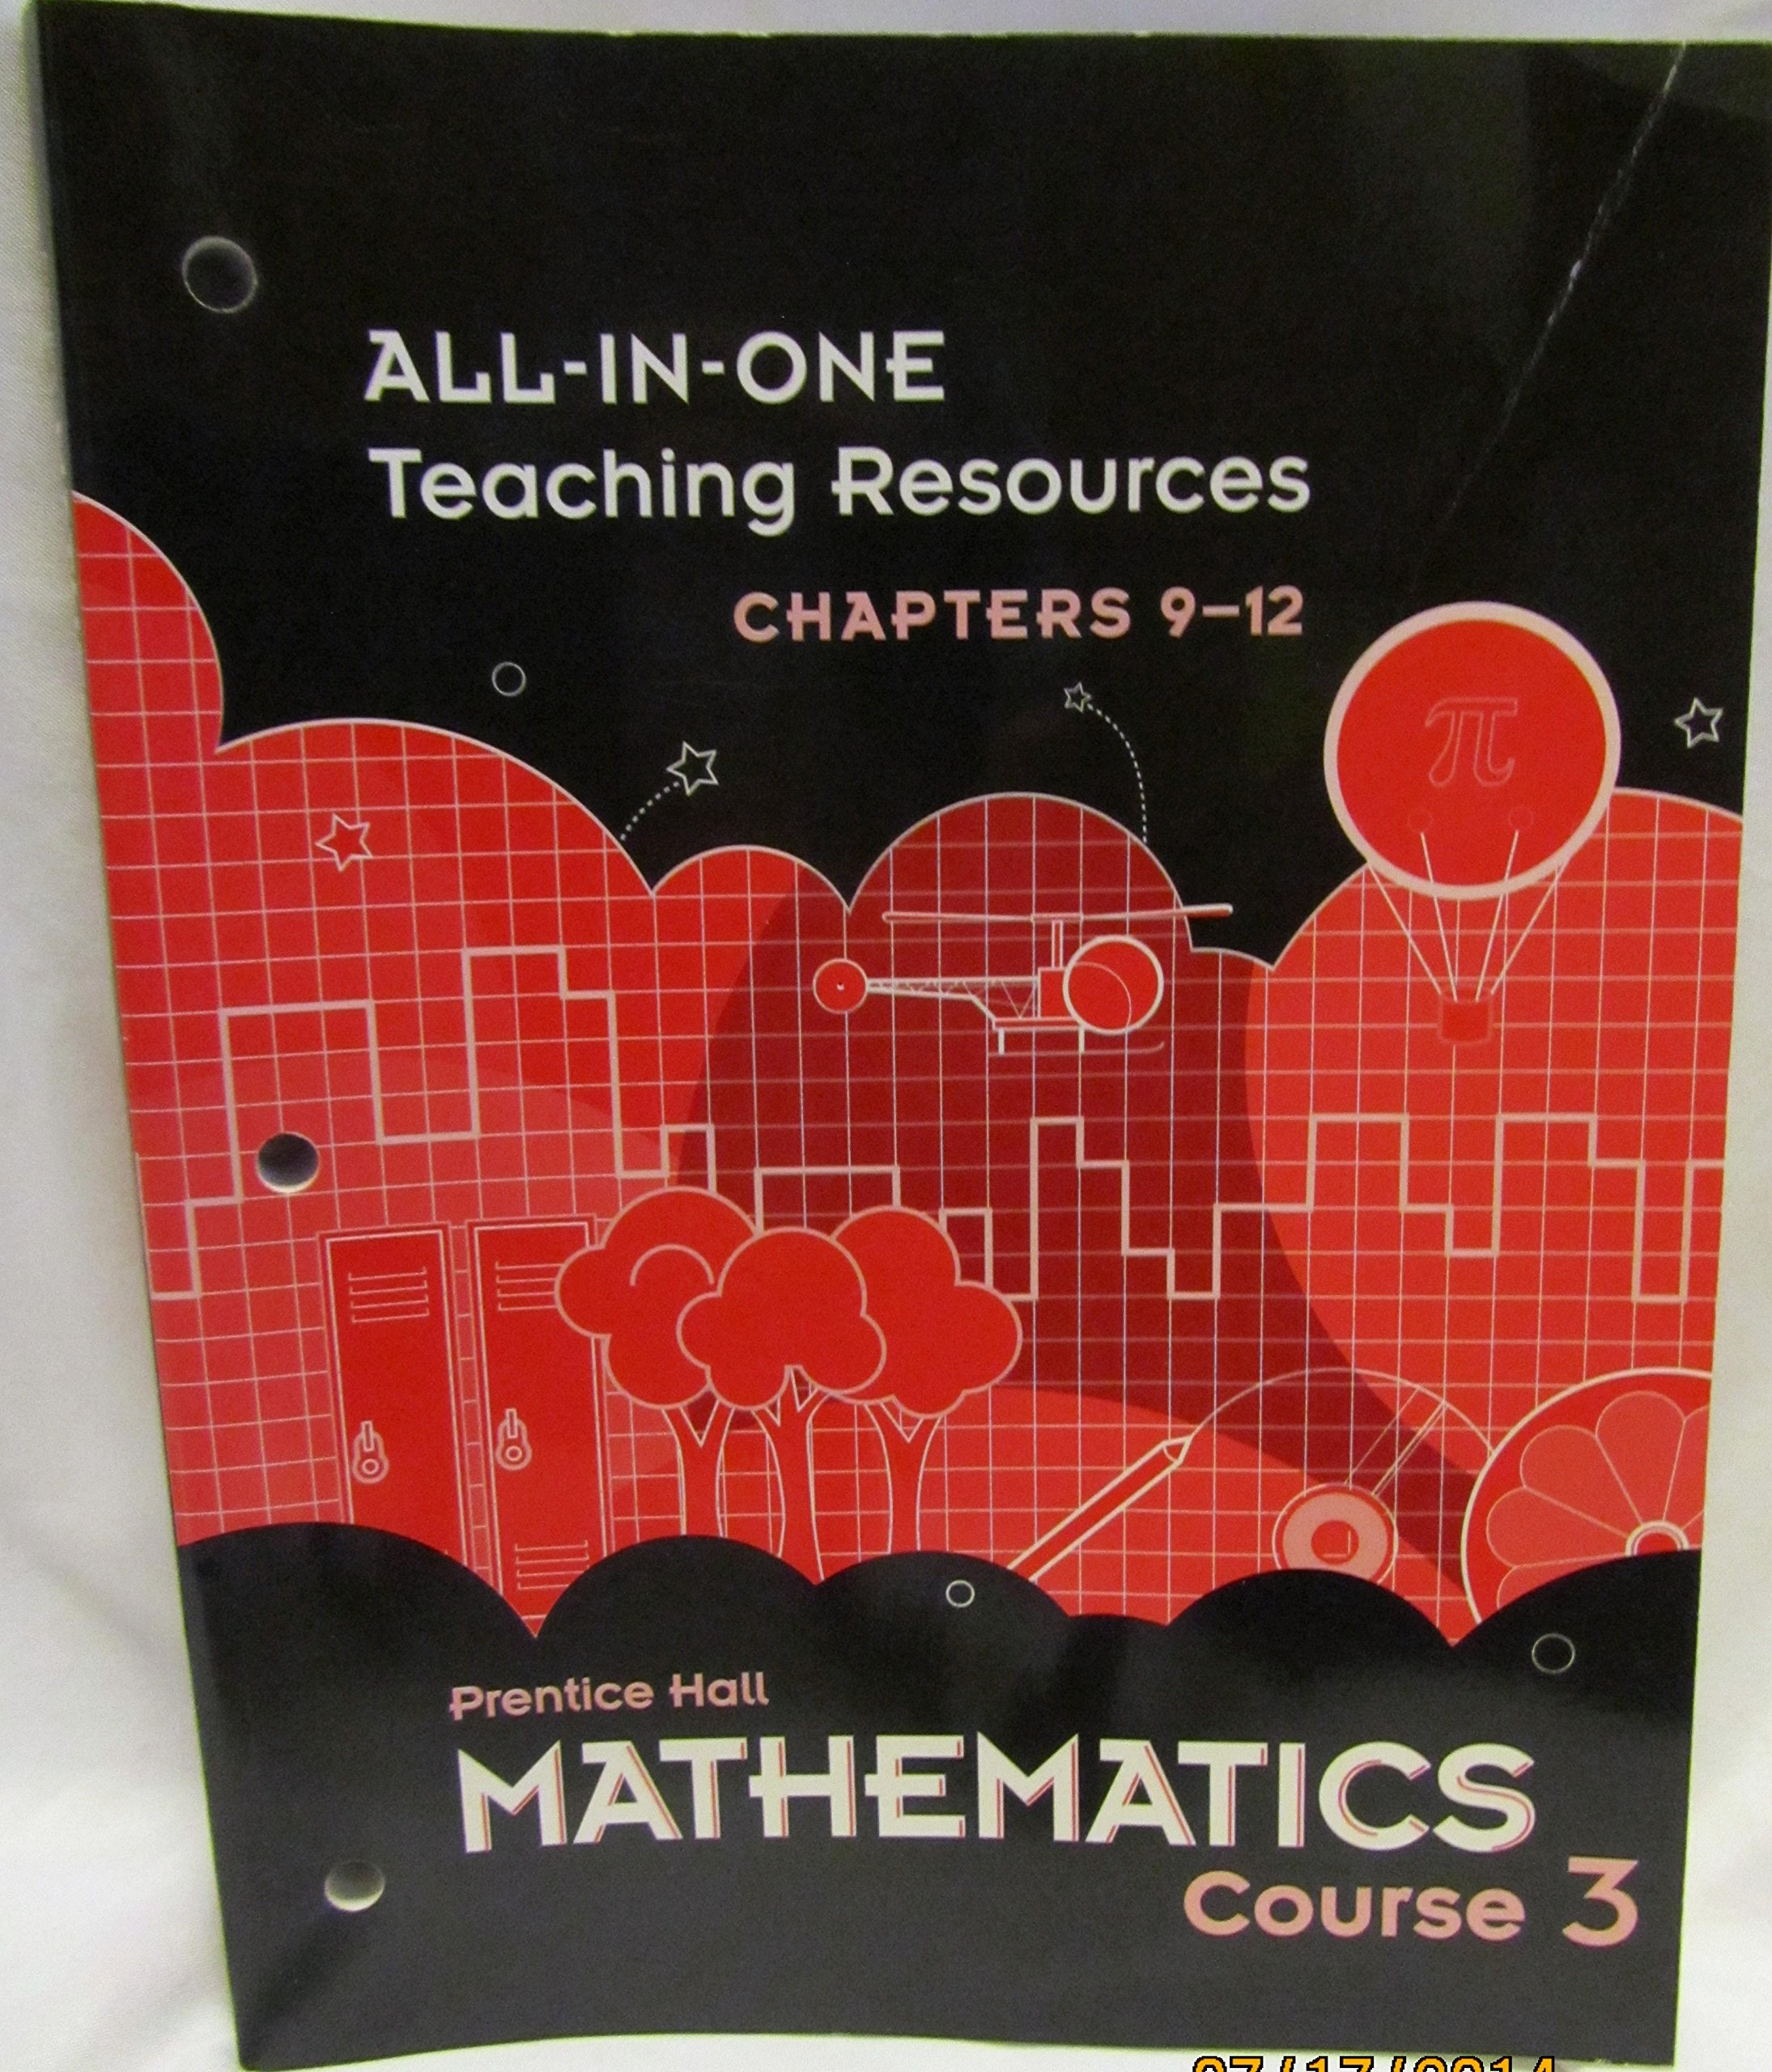 Prentice Hall Mathematics Course 3 All-in-One Teaching Resources Chapters 9-12 ISBN 0133721337 pdf